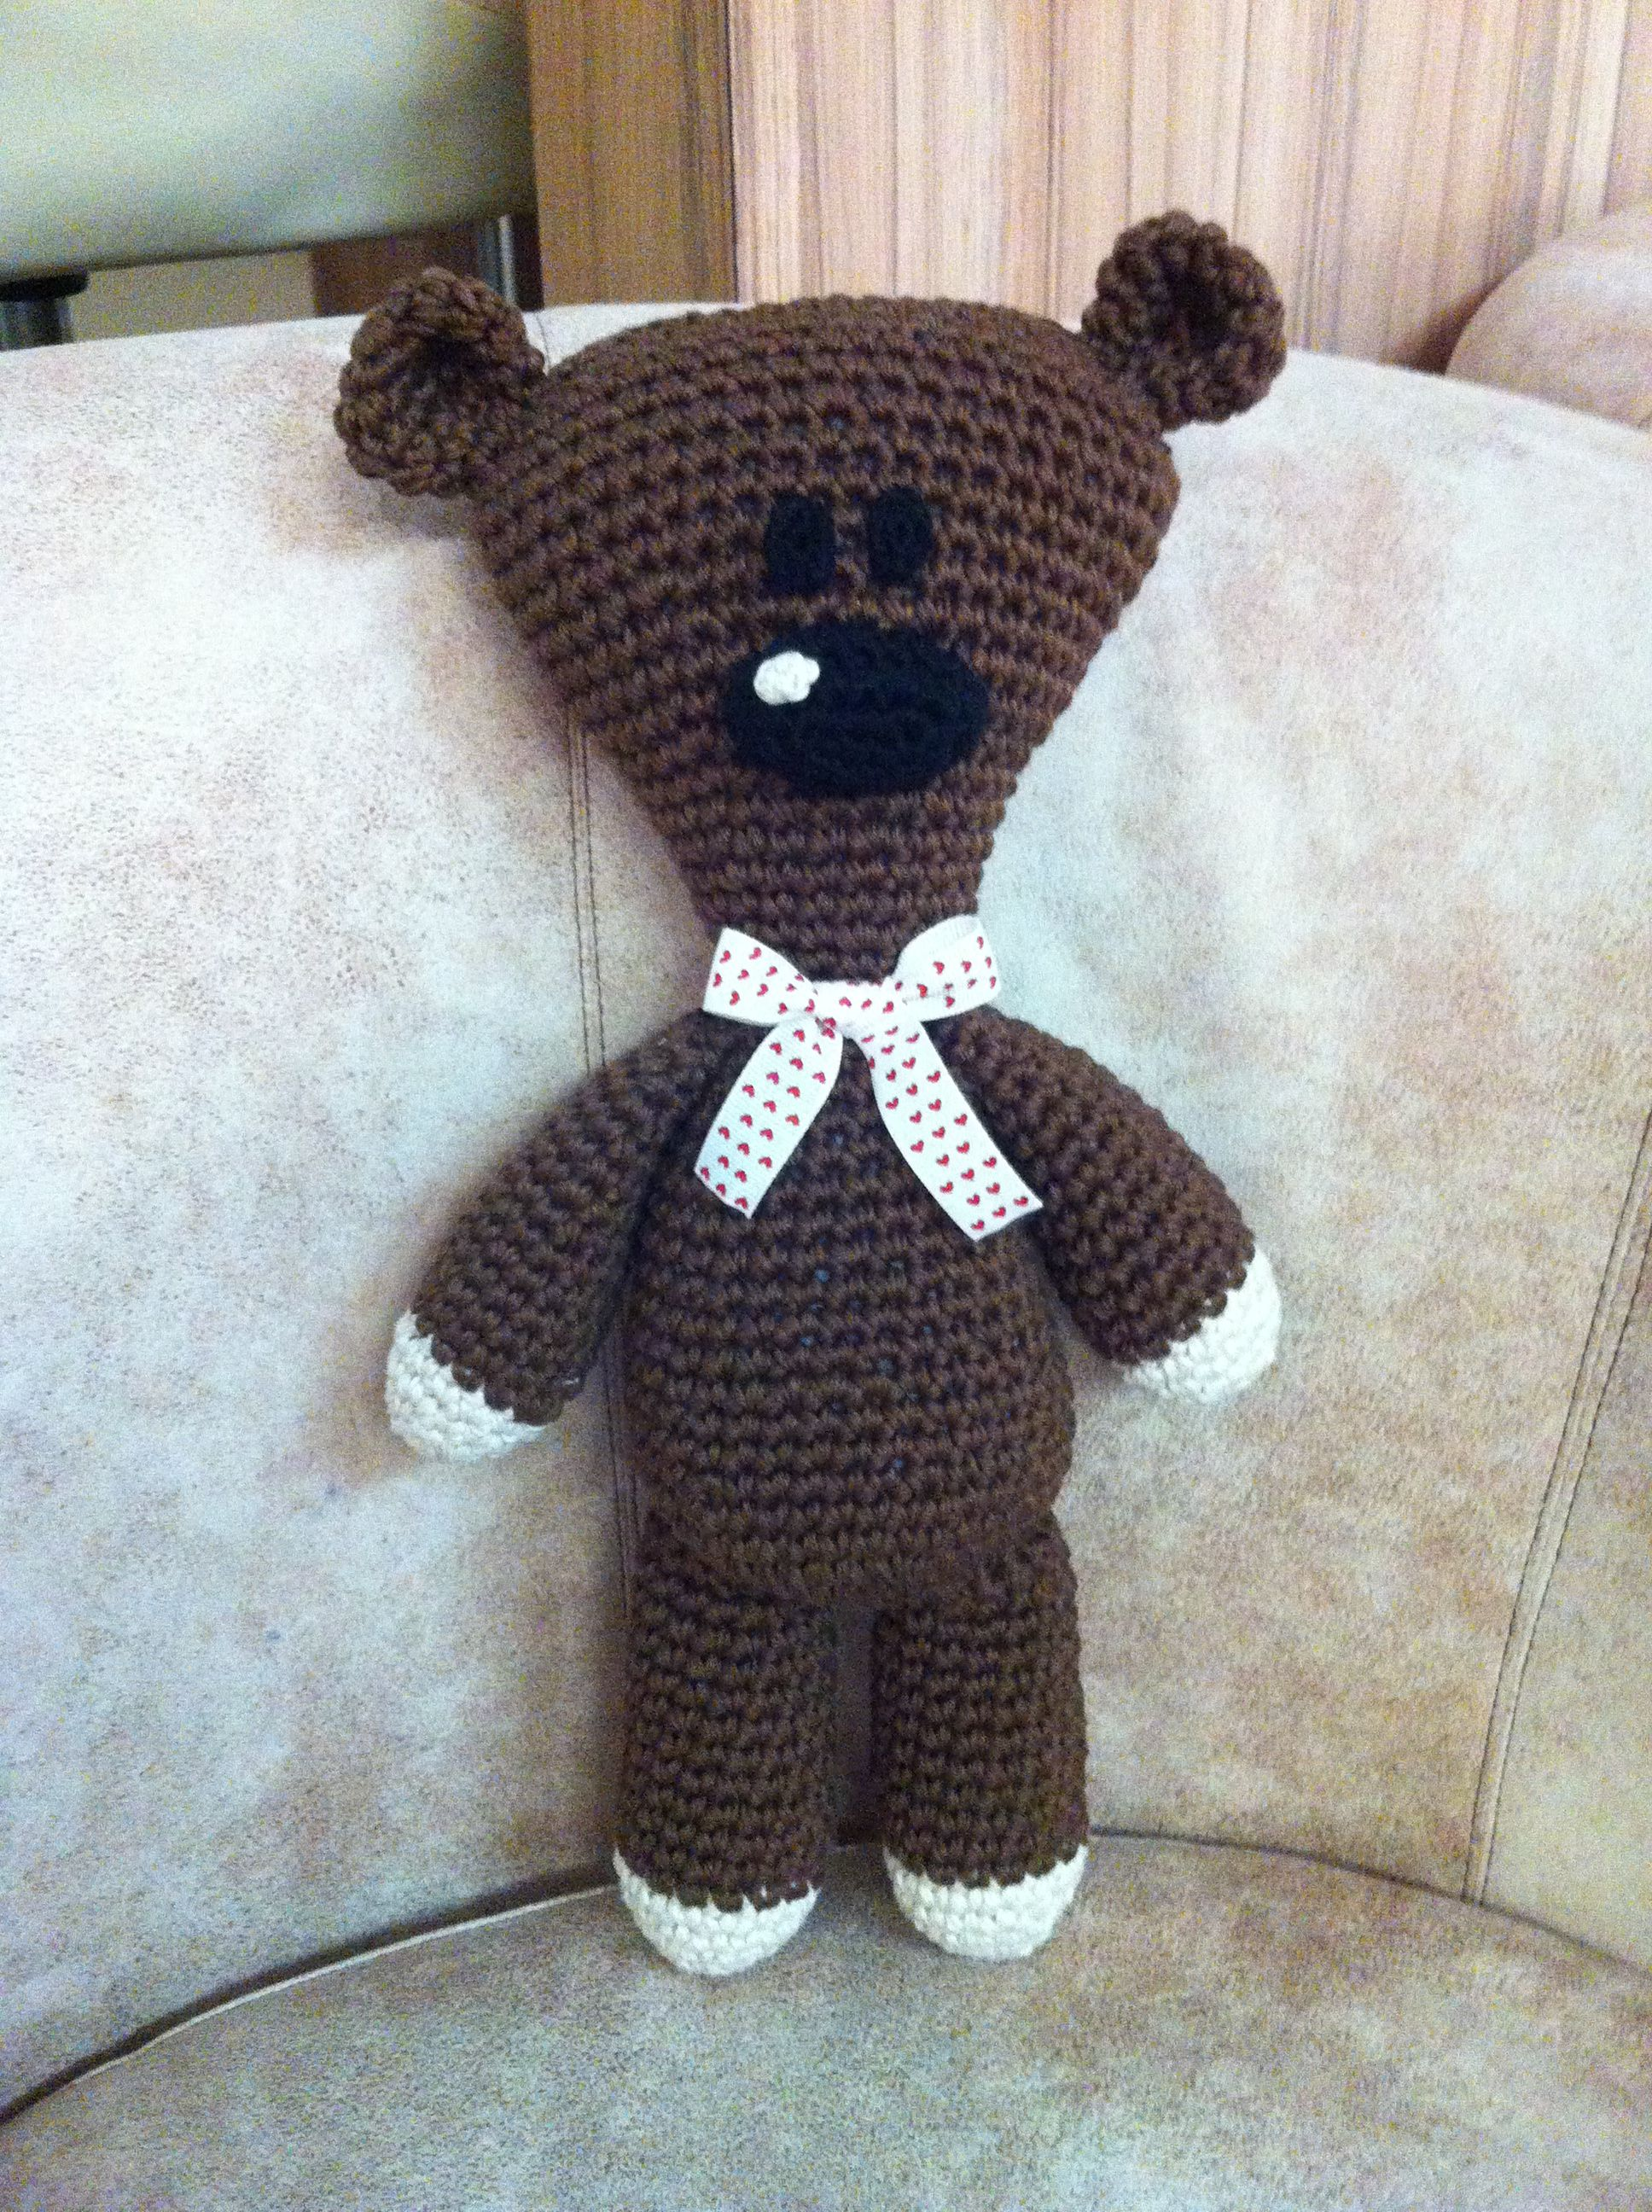 Mr Beans Teddy Bear Amigurumi Design By Milena Jovicic Crochet